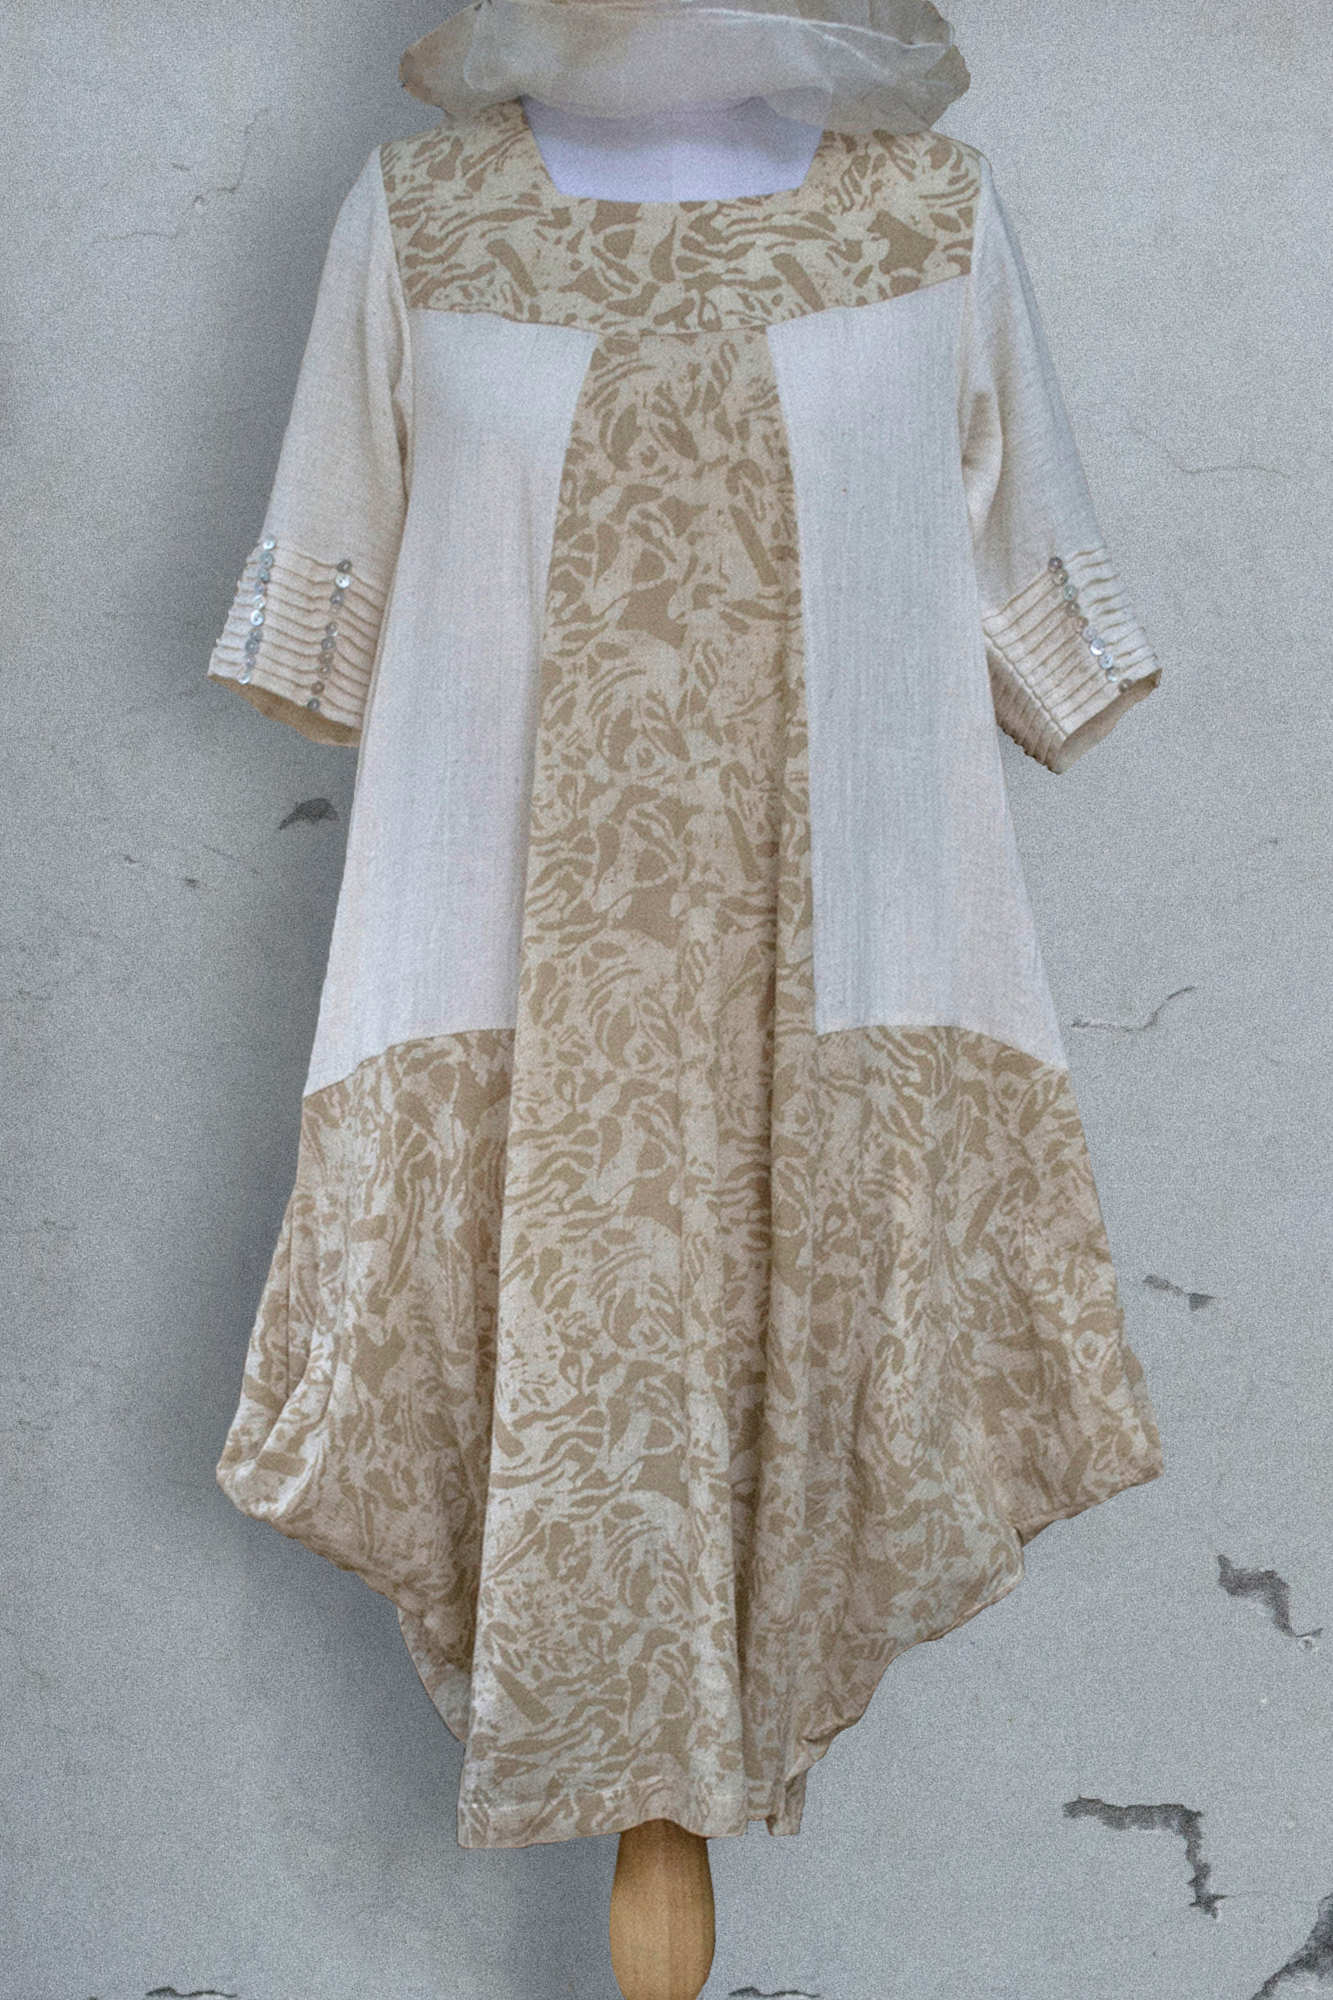 TWO SIDED COWL DRESS